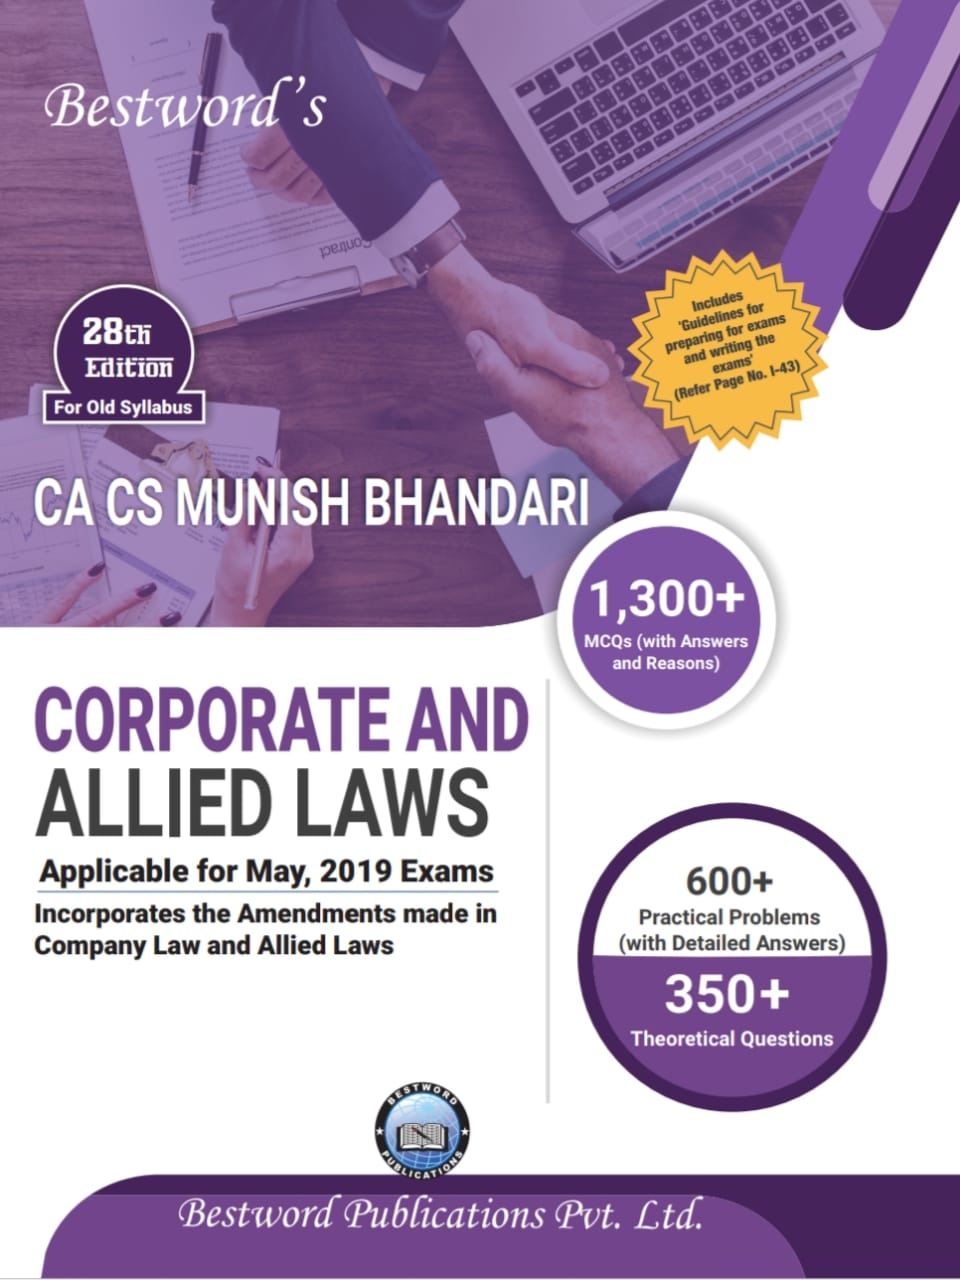 Bestword's Corporate and Allied Laws for CA Final for May 2019 exam by CA Munish Bhandari (Bestword's Publishing) Edition 28th, 2019